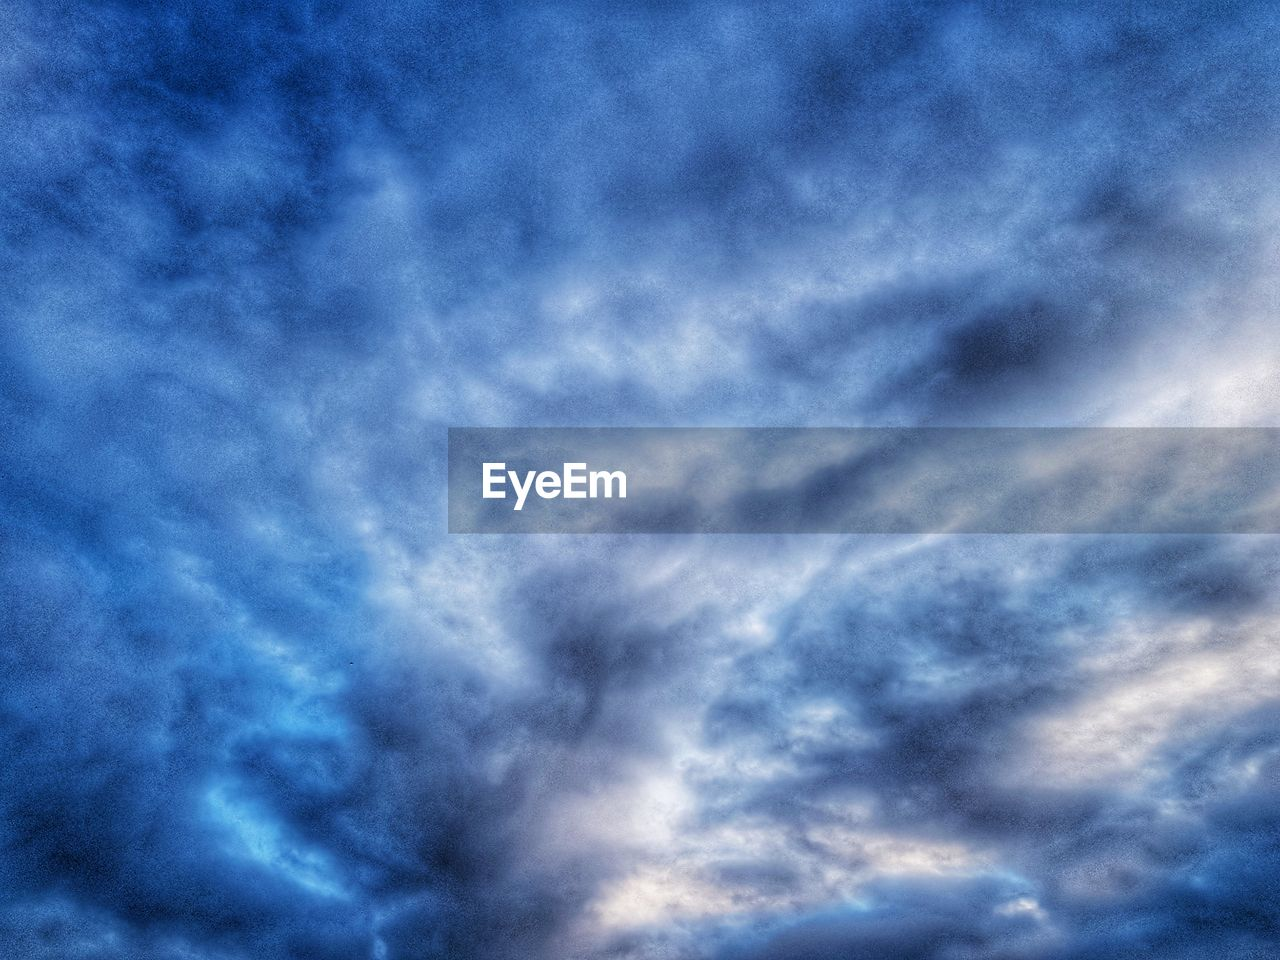 cloud - sky, sky, beauty in nature, low angle view, blue, tranquility, no people, nature, tranquil scene, scenics - nature, backgrounds, outdoors, dramatic sky, day, overcast, cloudscape, storm, idyllic, full frame, meteorology